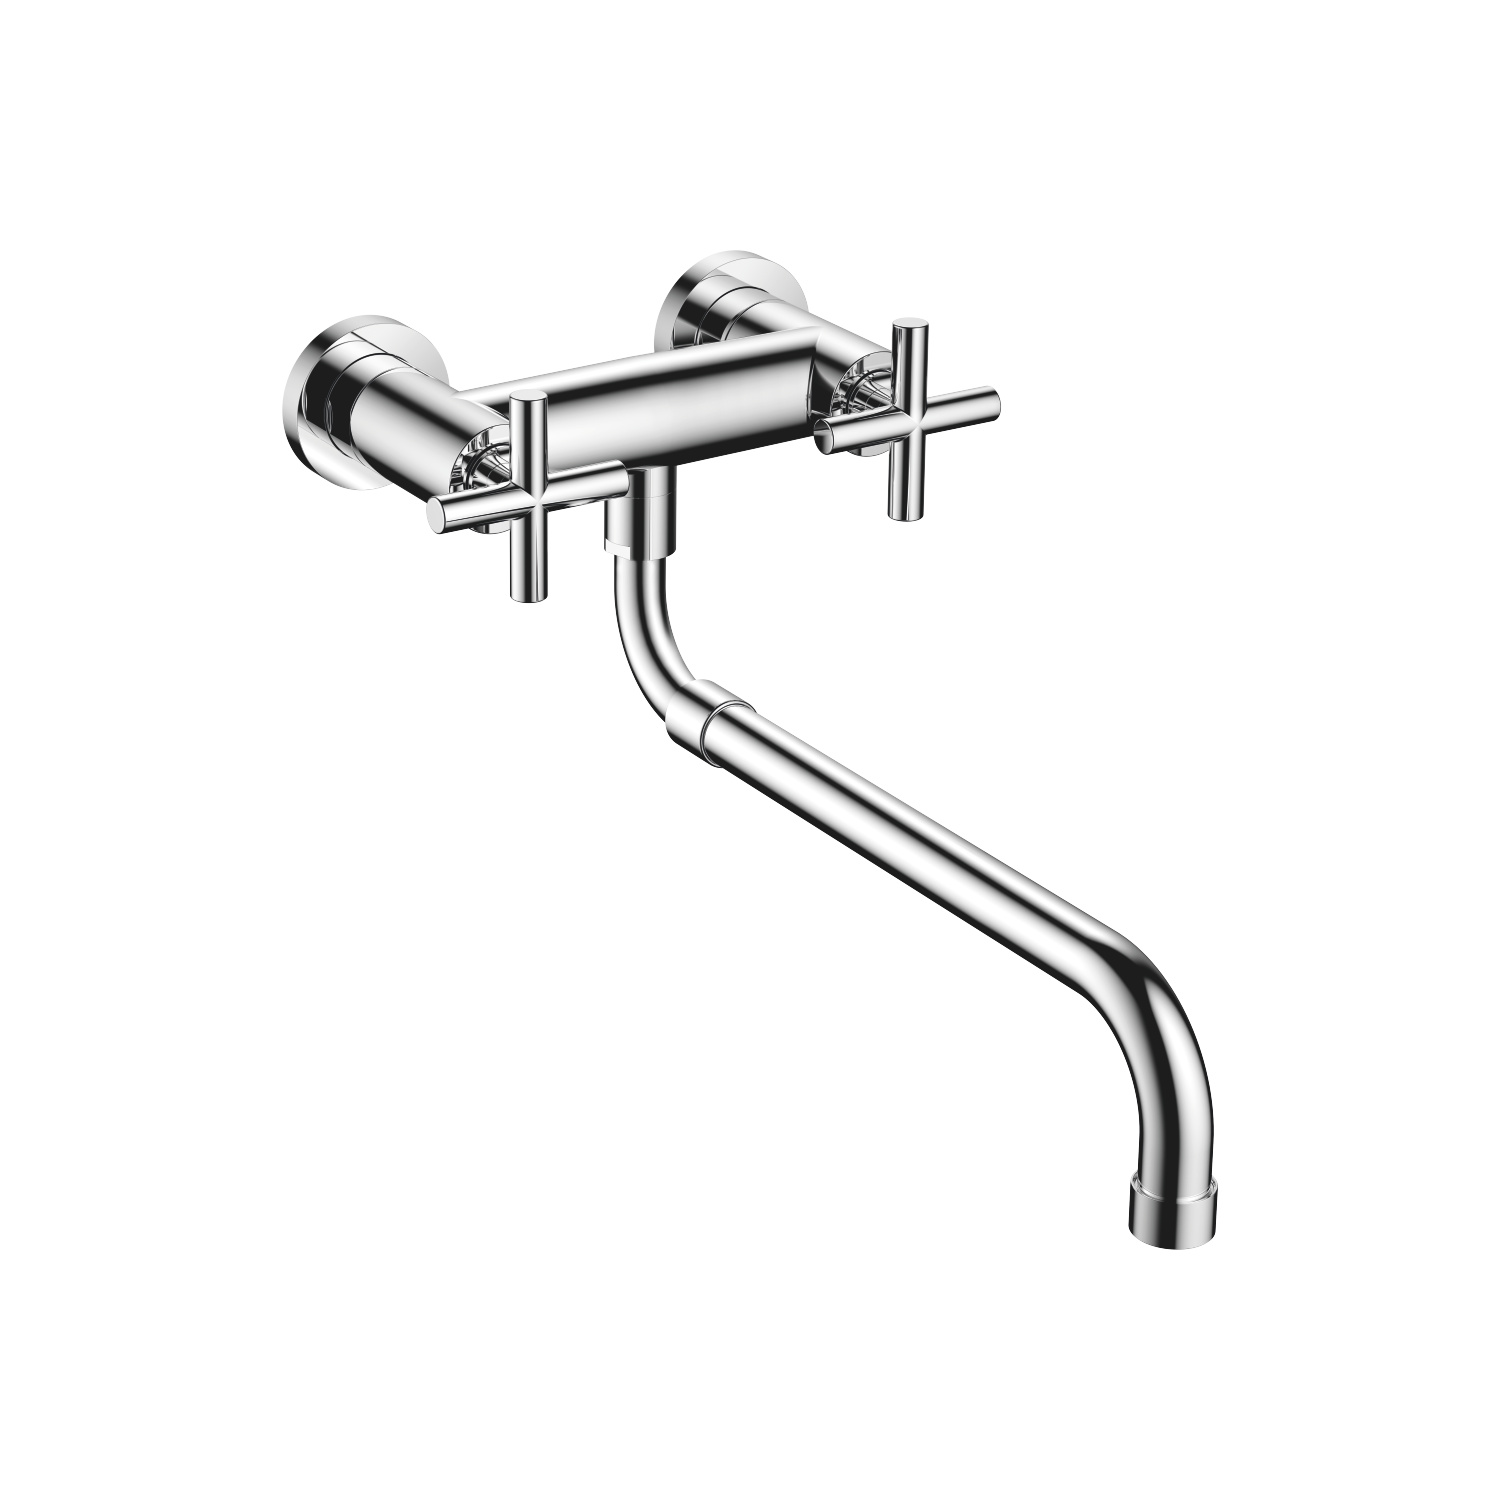 Wall-mounted bridge mixer with extending spout - polished chrome